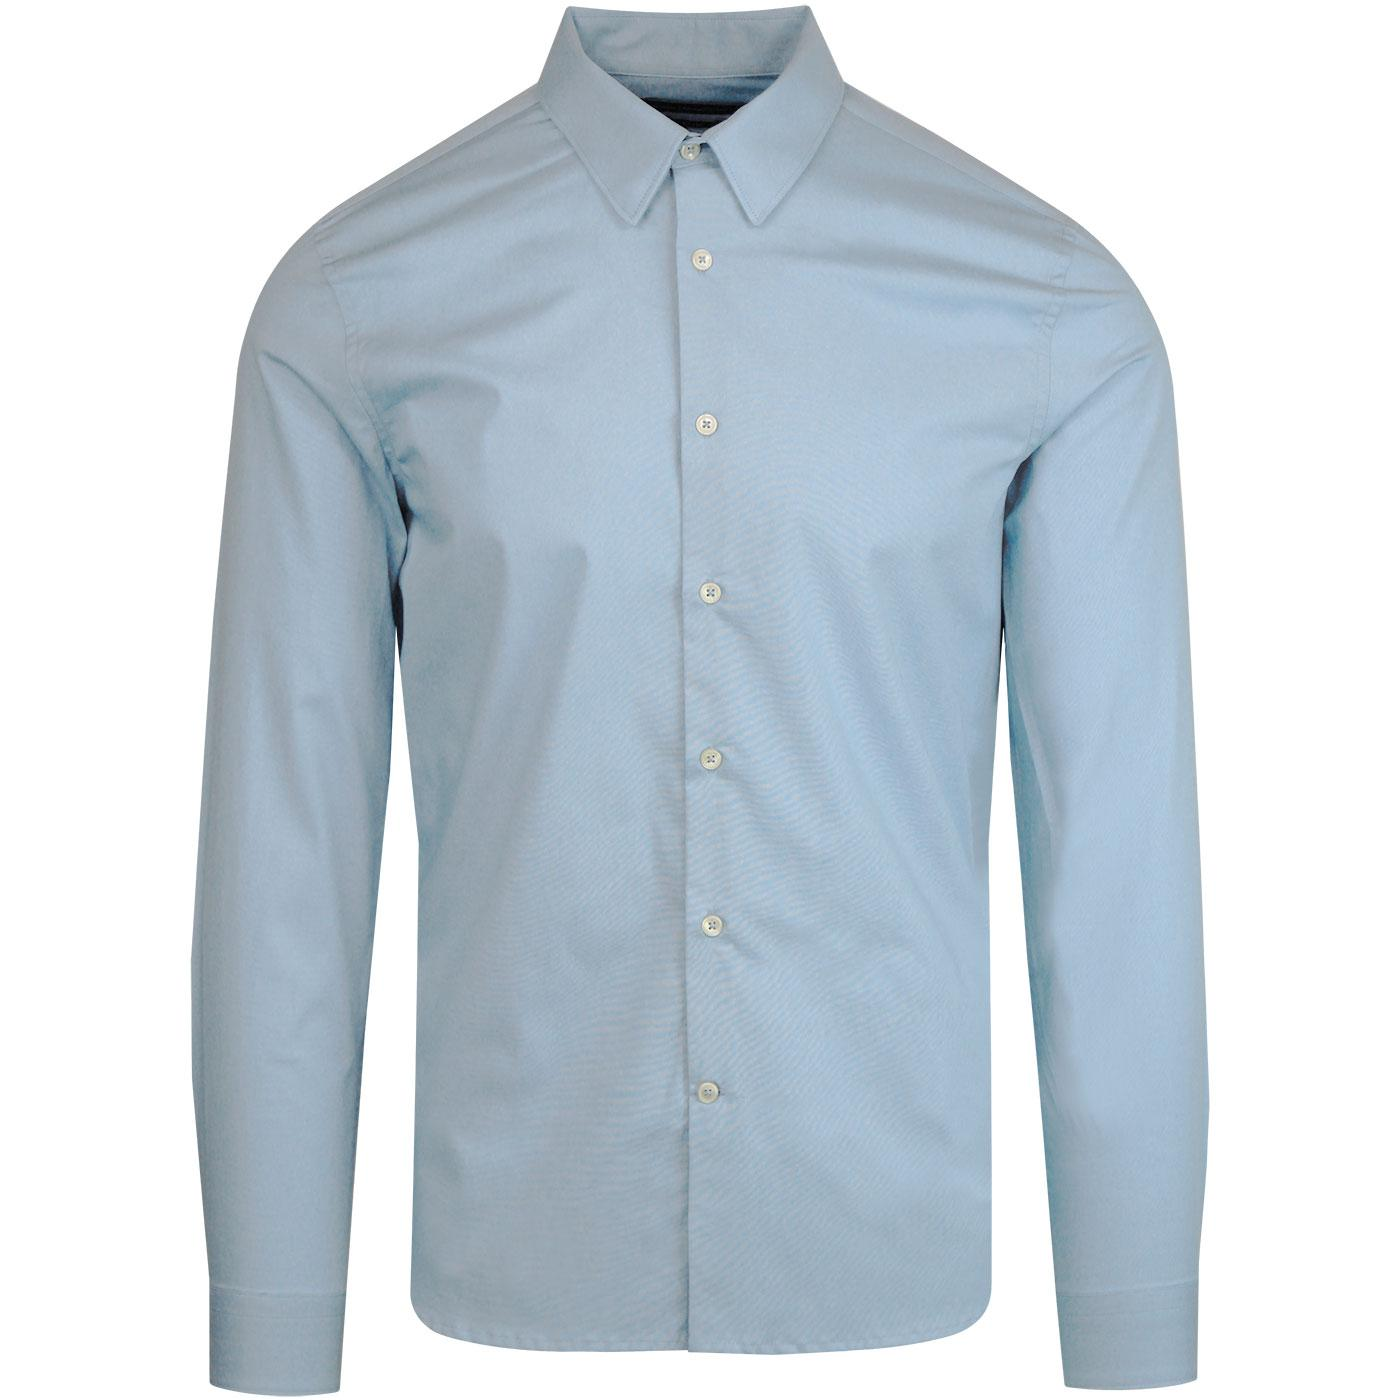 FRENCH CONNECTION Retro Stretch Poplin Shirt BLUE